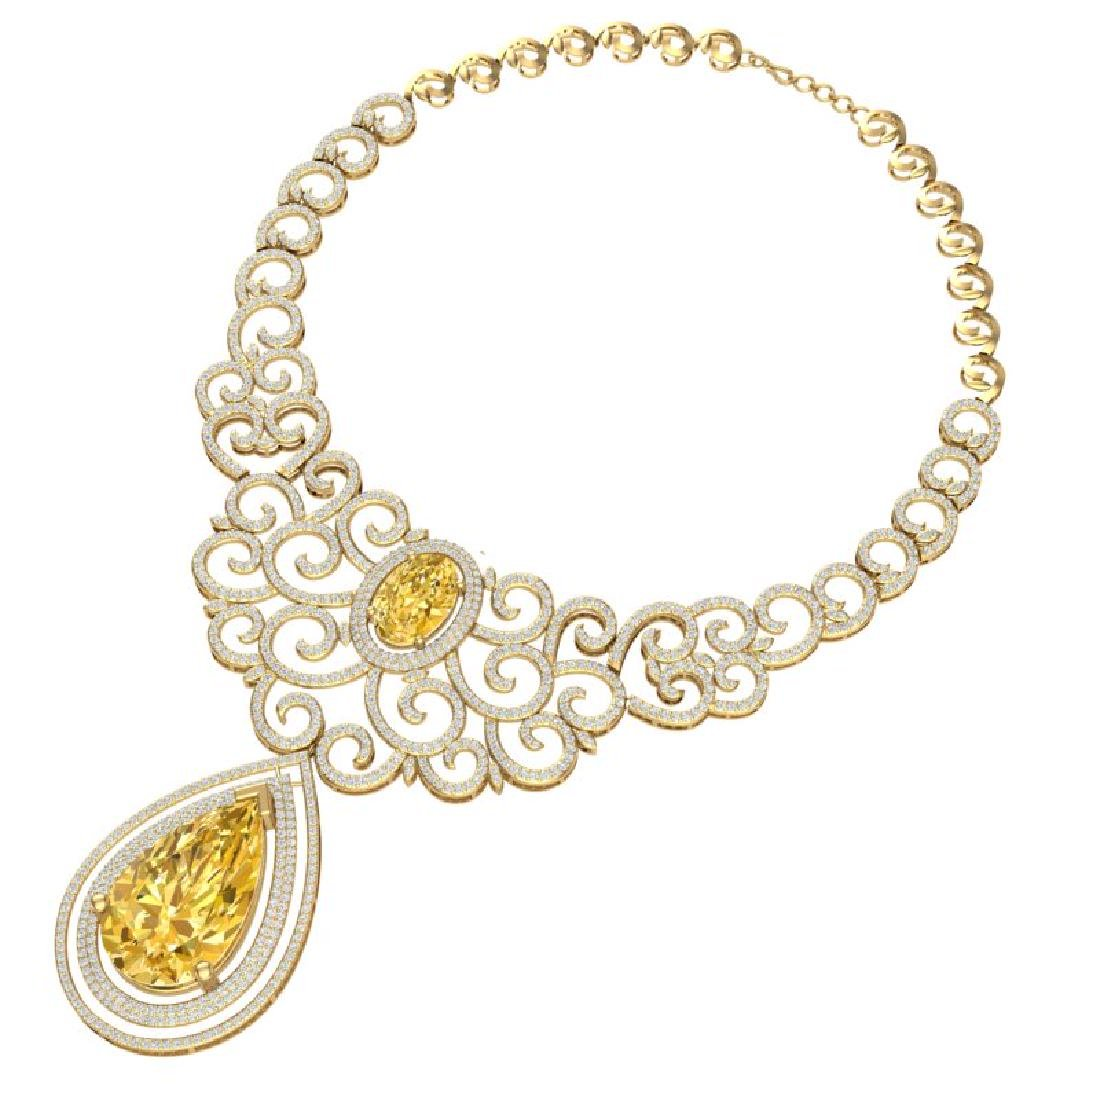 73.43 CTW Royalty Canary Citrine & VS Diamond Necklace - 3